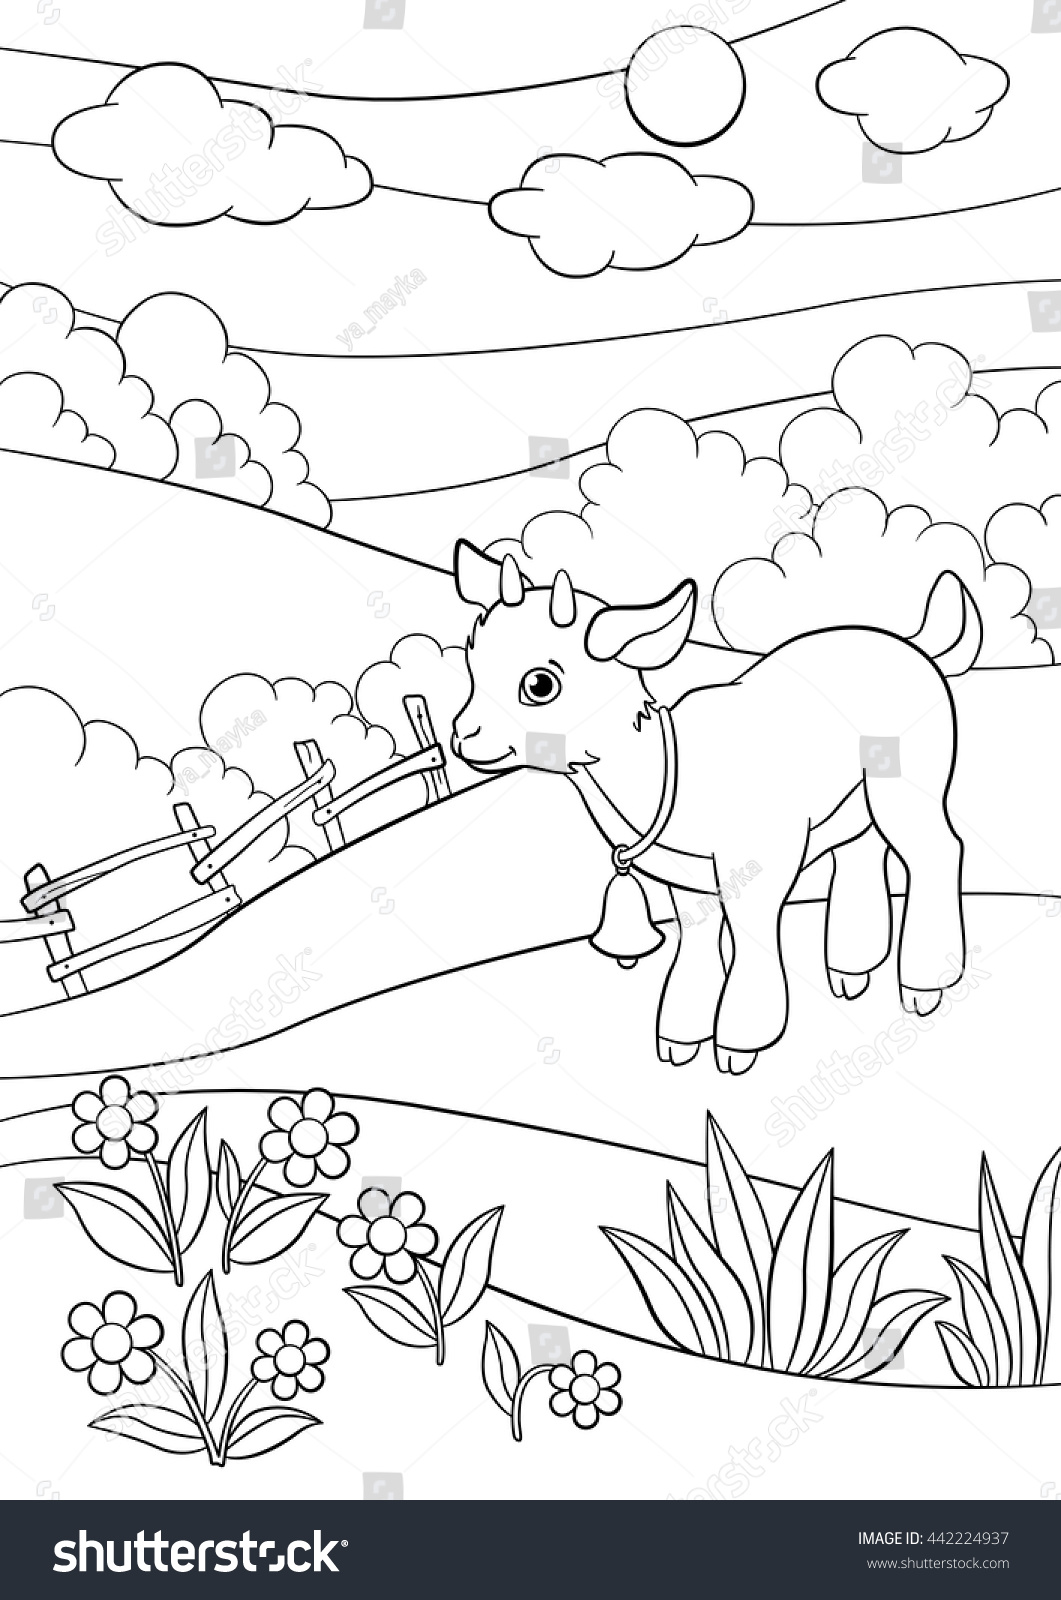 coloring pages farm animals little cute stock vector 442224937